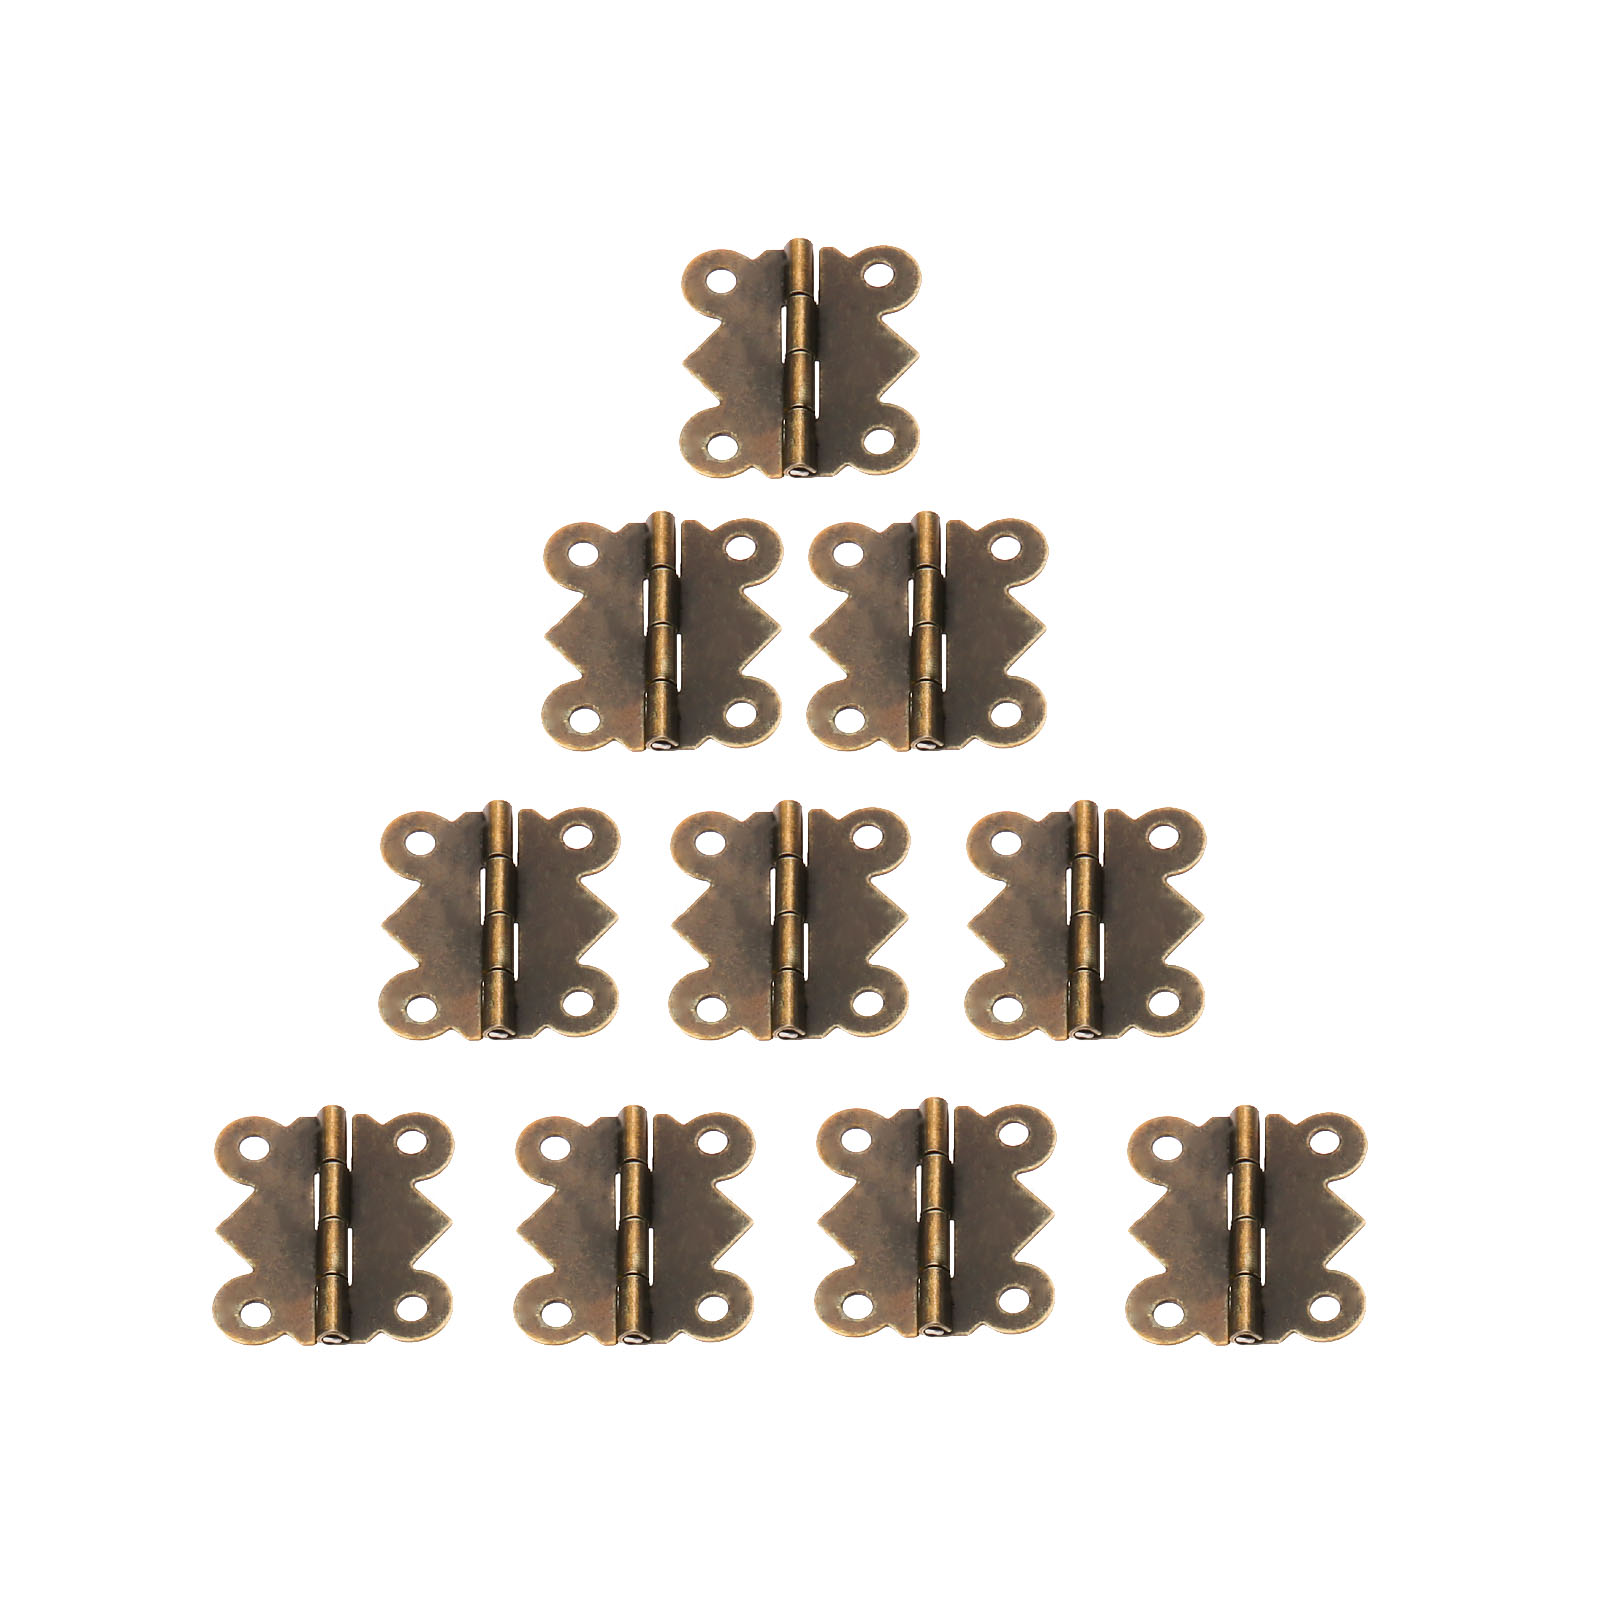 20Pcs 25x20mm Mini Butterfly Door Hinge Antique Bronze Cabinet Jewellery Box Decorative Hinges Furniture Hardware with Screws